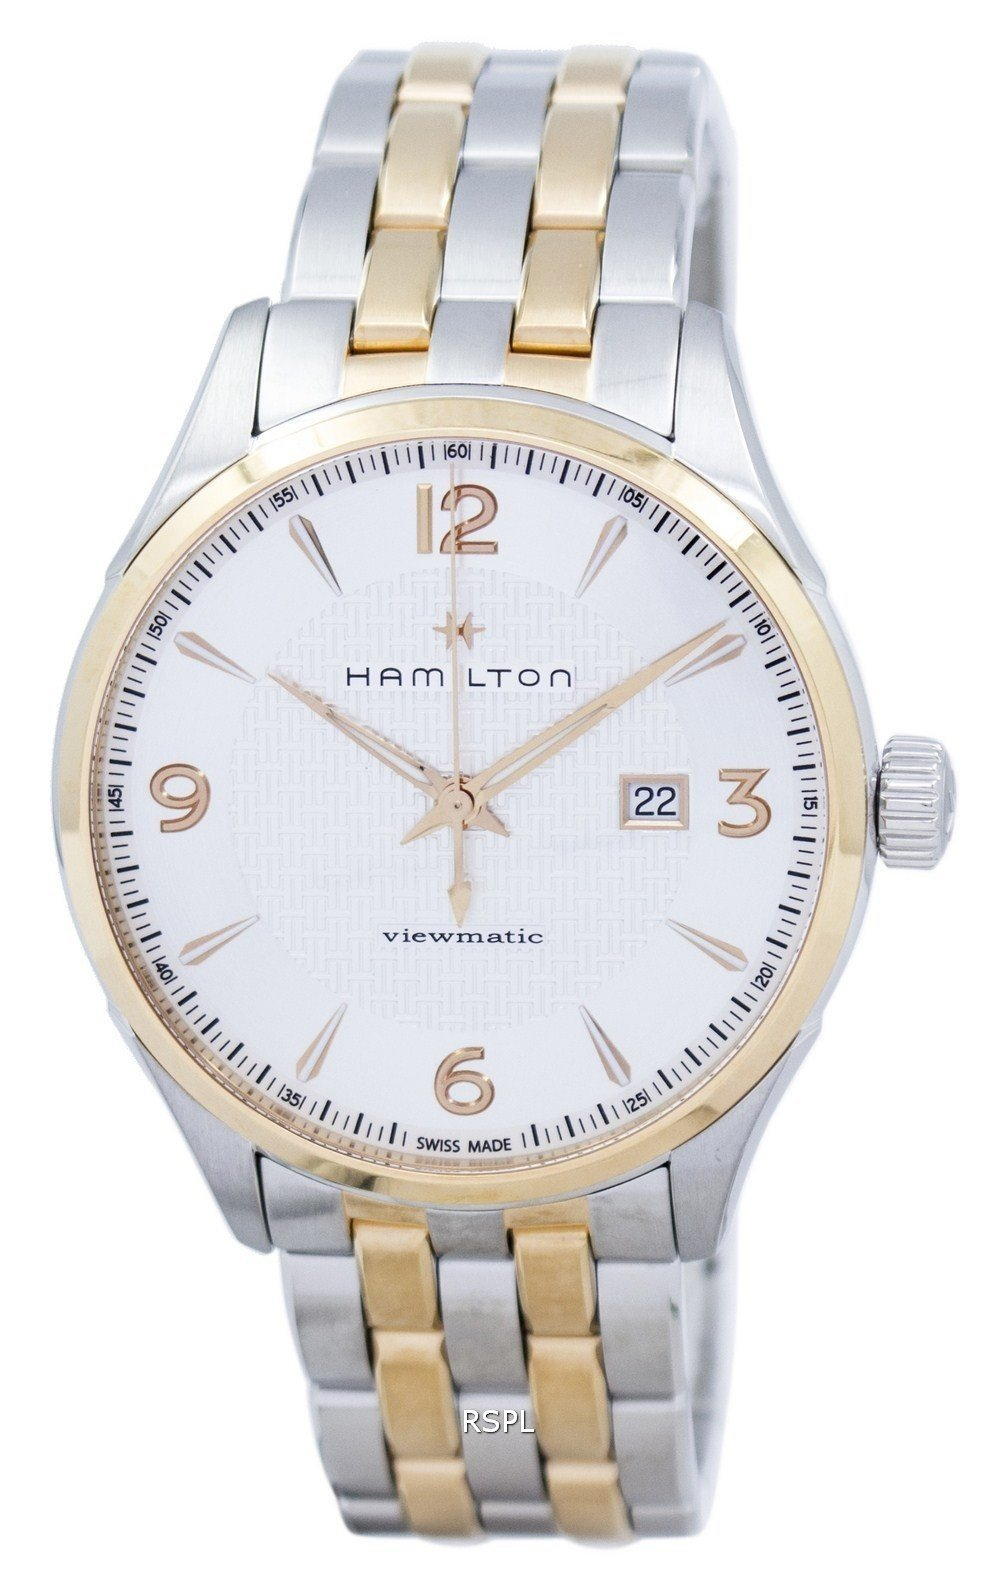 Hamilton Jazzmaster Viewmatic Automatic H42725151 Men's Watch: Shine Your Individuality